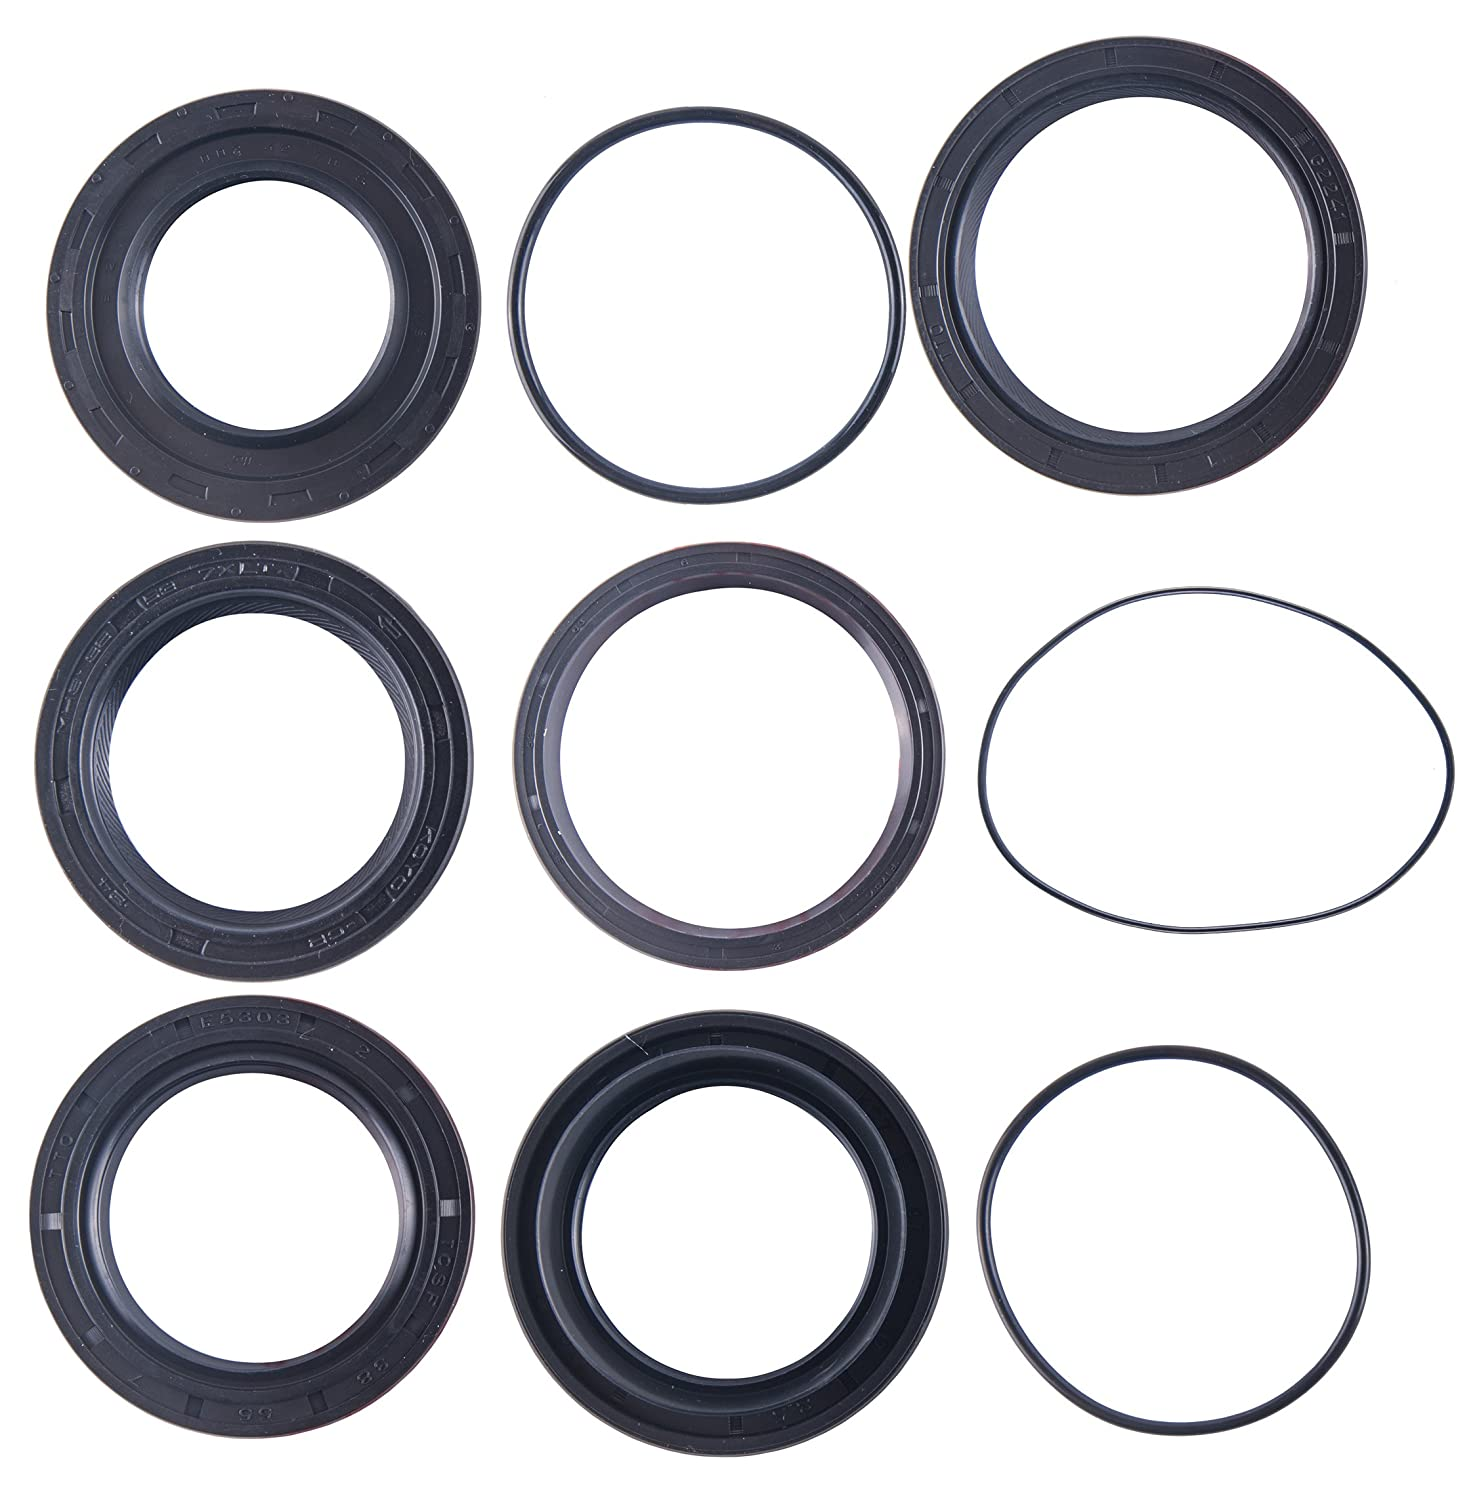 Yamaha rear differential seal kit 350 Wolverine 1995 1996 1997 1998 1999-2005 East Lake Axle